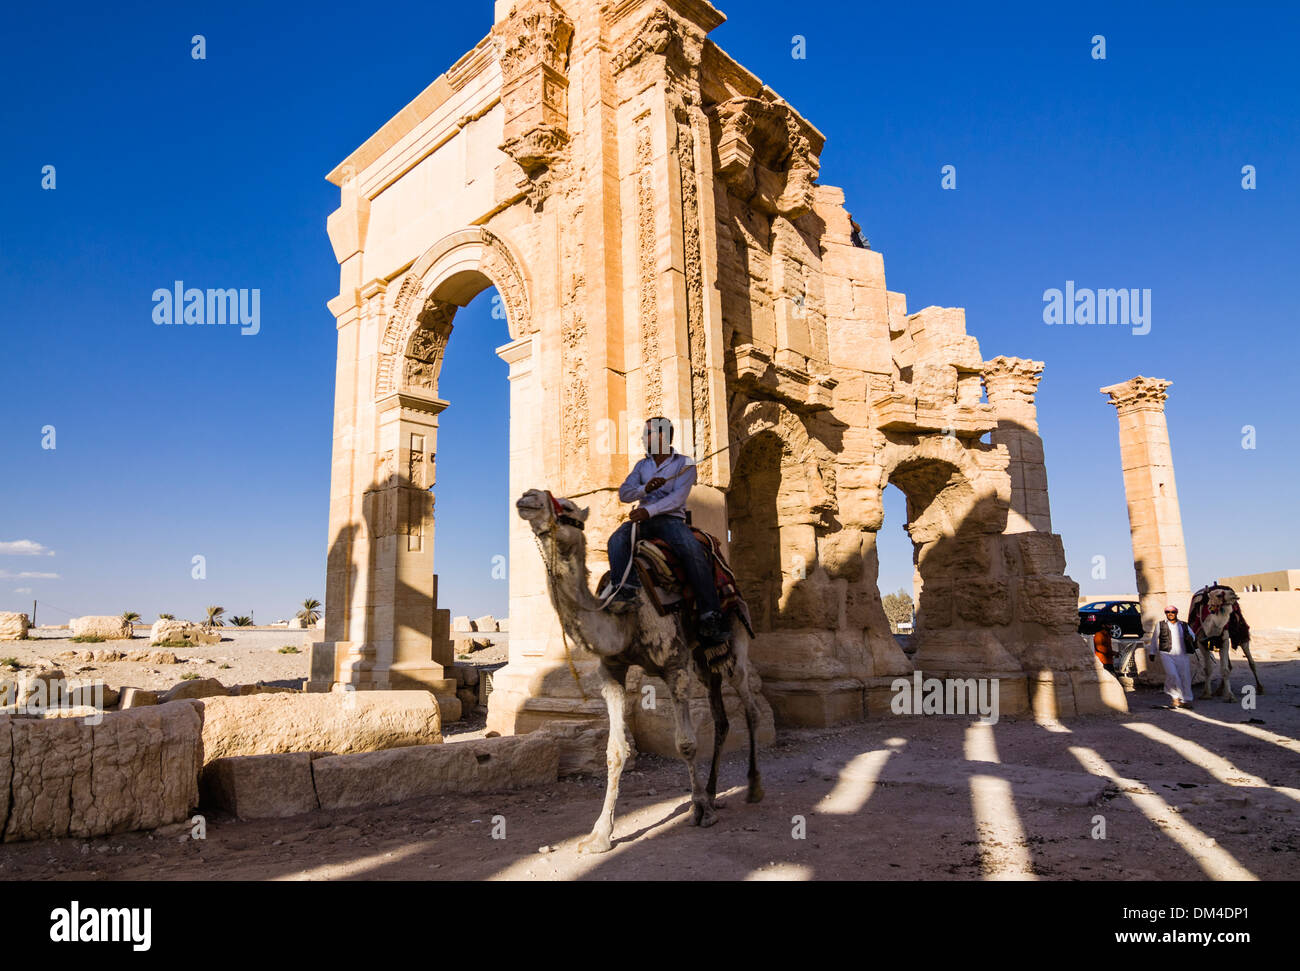 Man on camel beside the monumental arch of the ruins at Palmyra, Syria - Stock Image